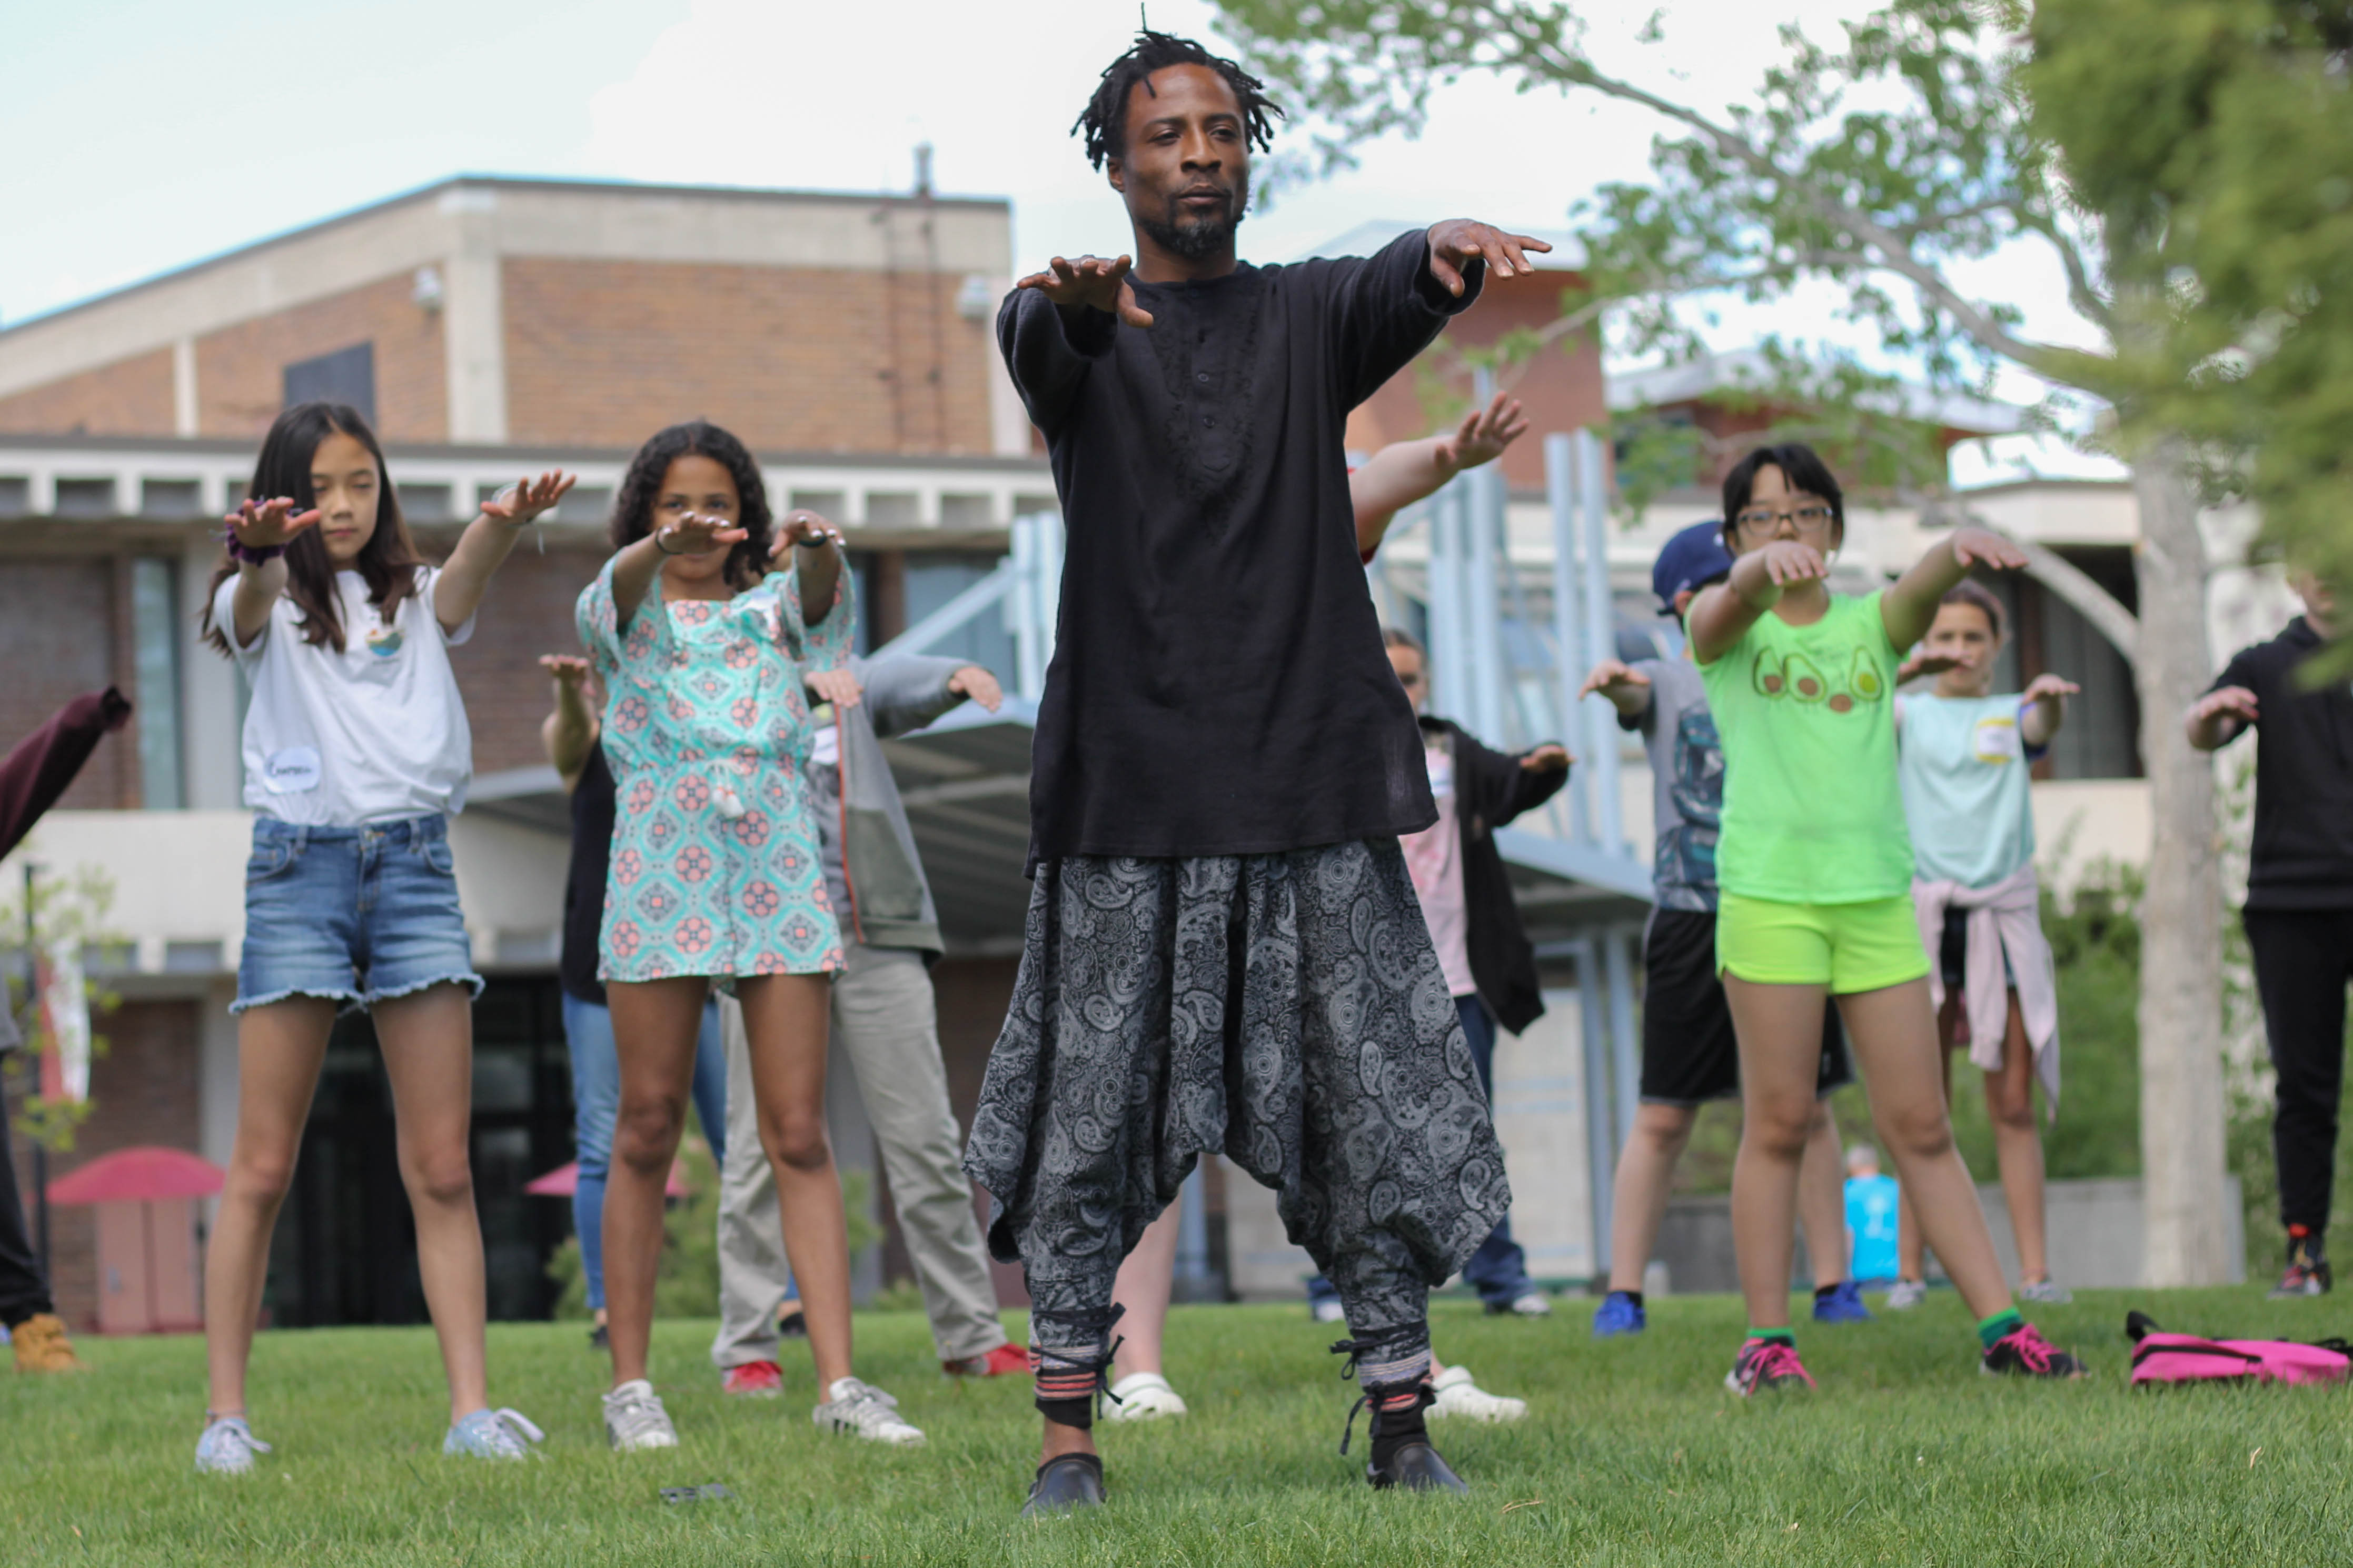 A man in a black top and grey pants holds a tai chi pose, with his feet planted and arms held out in front of him. In the background, several children mimic his movement.